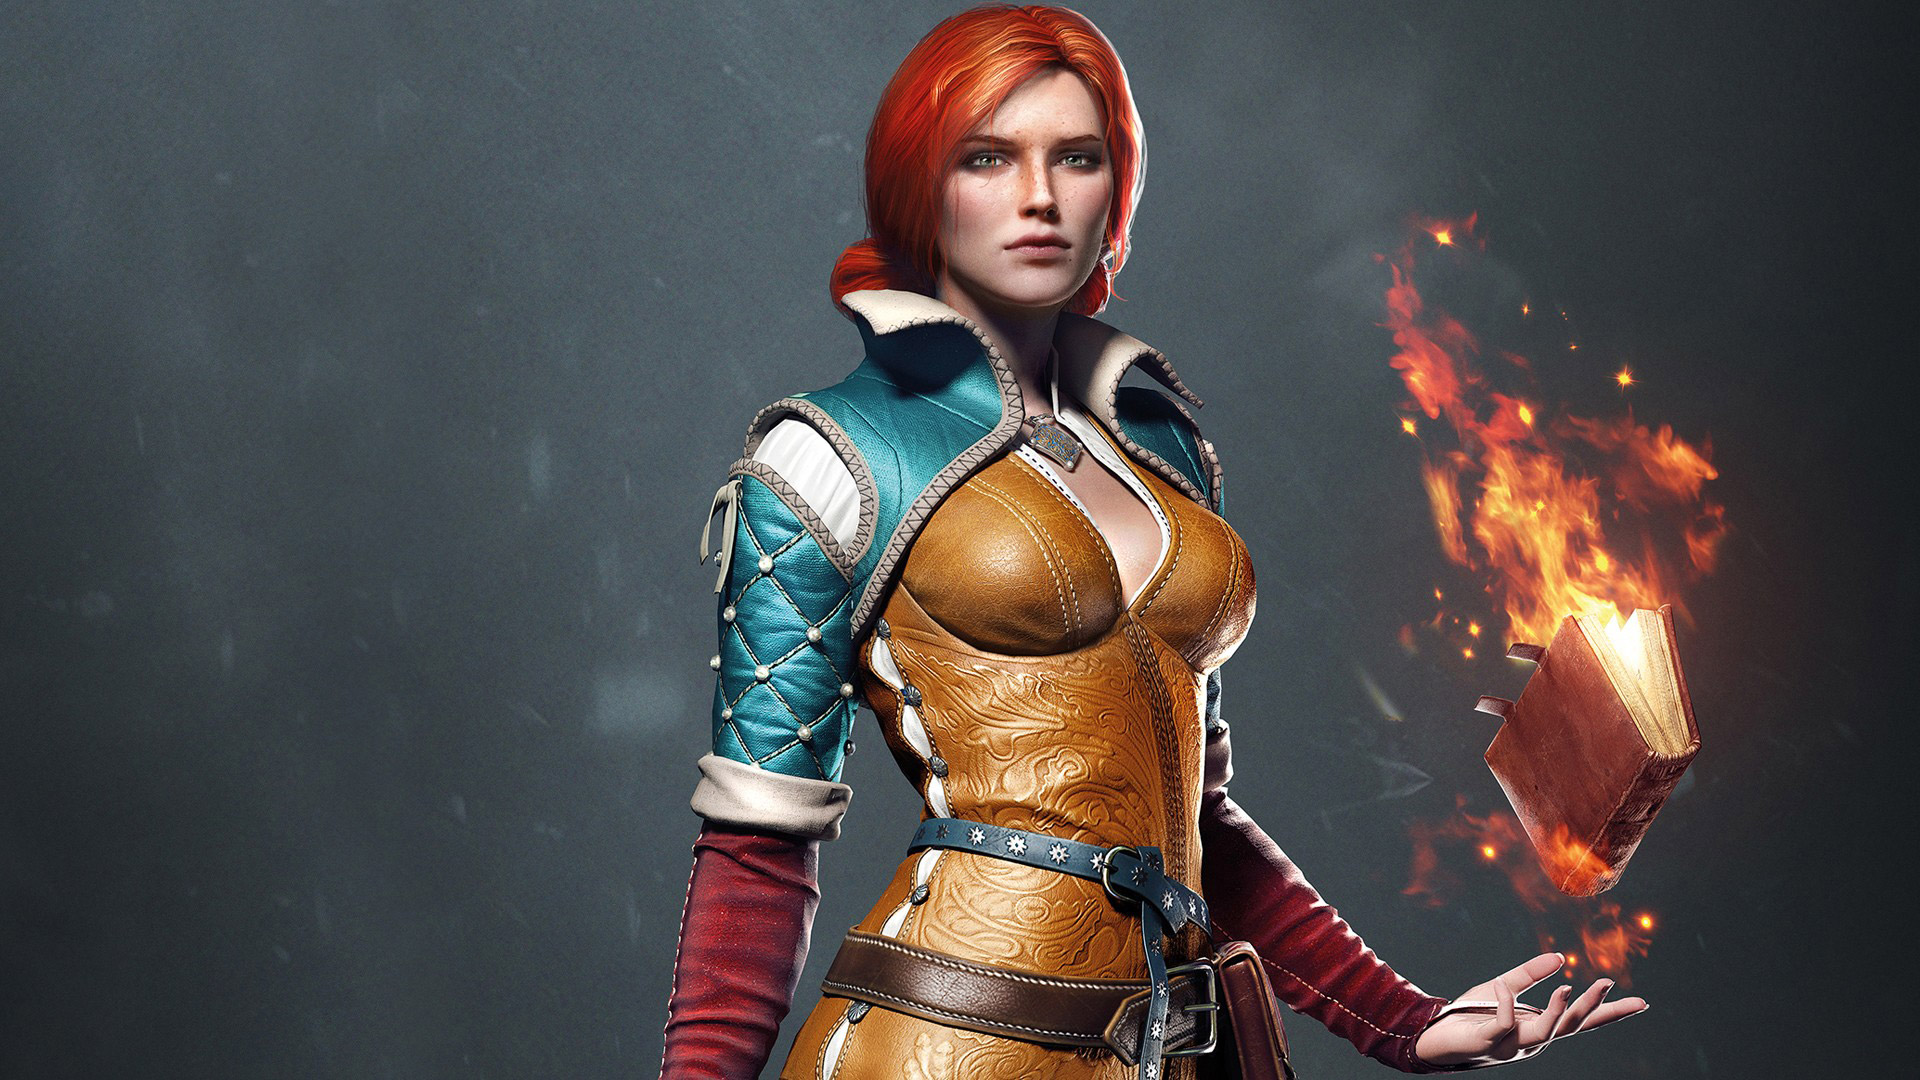 Download Wallpaper From Game The Witcher 3 Wild Hunt With Tags Macos